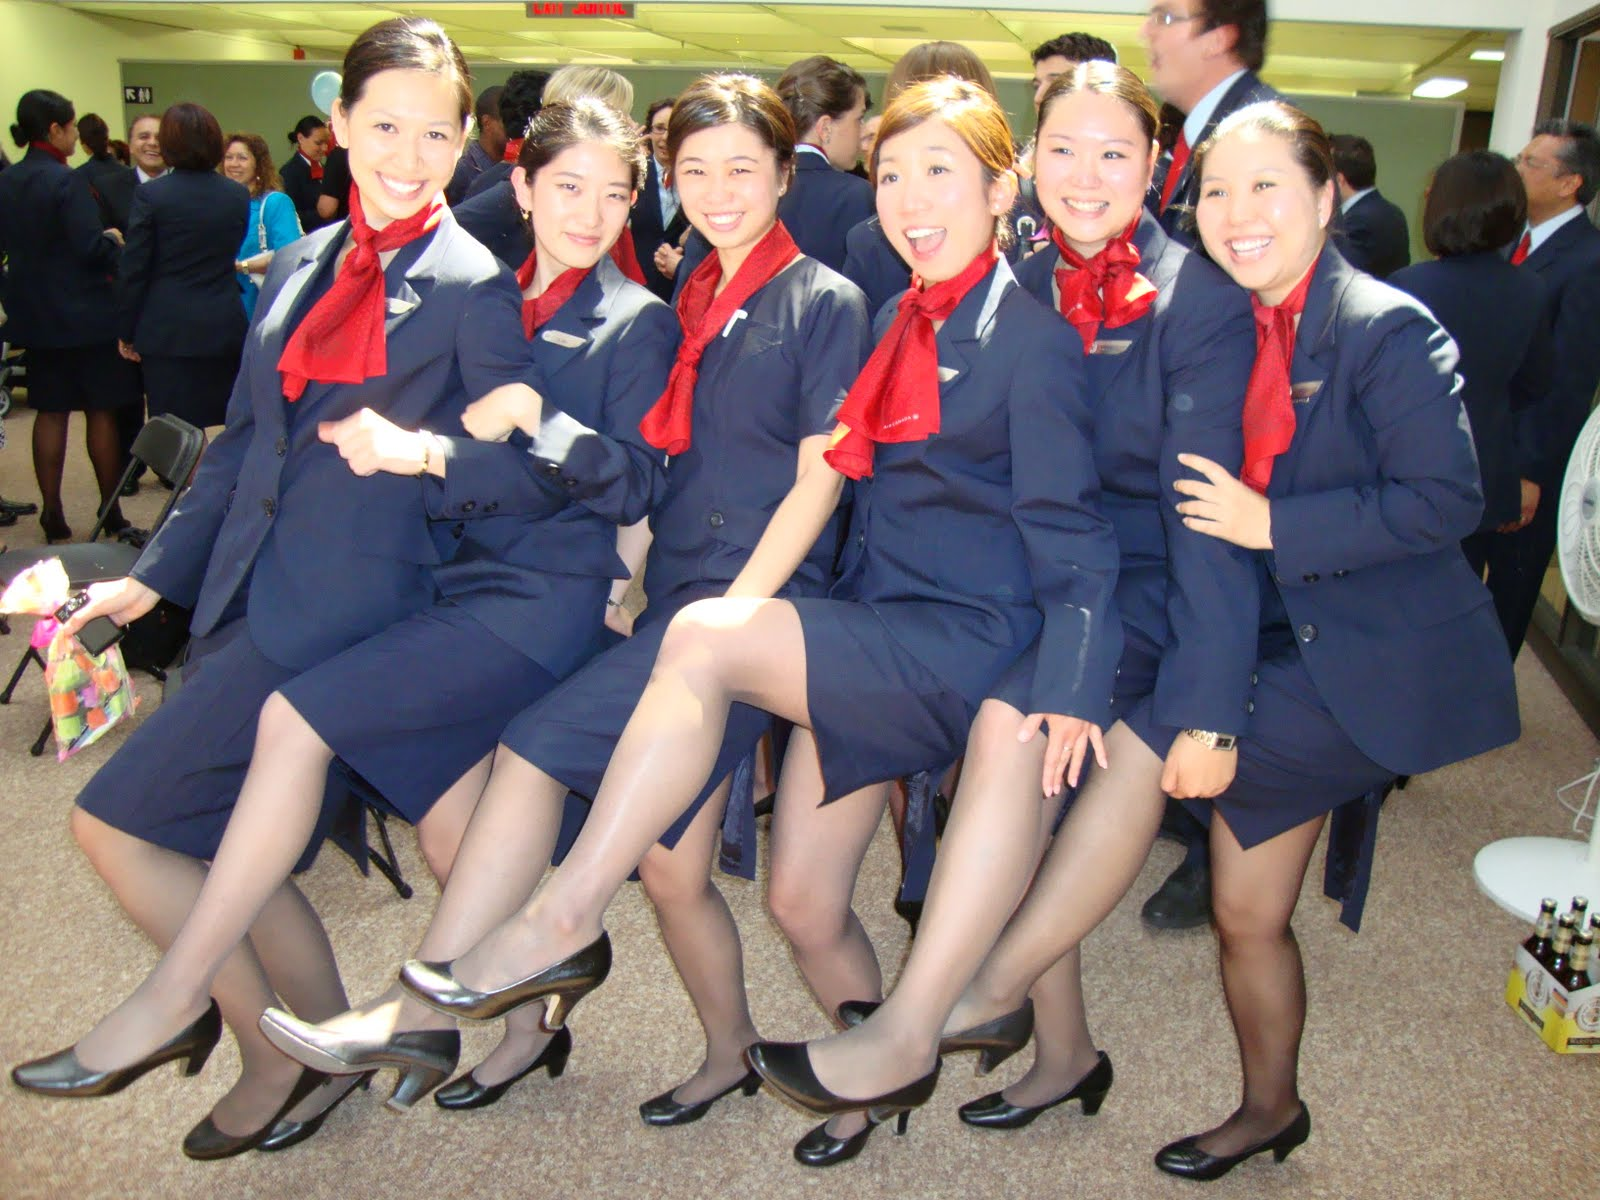 Stewardess in training mode